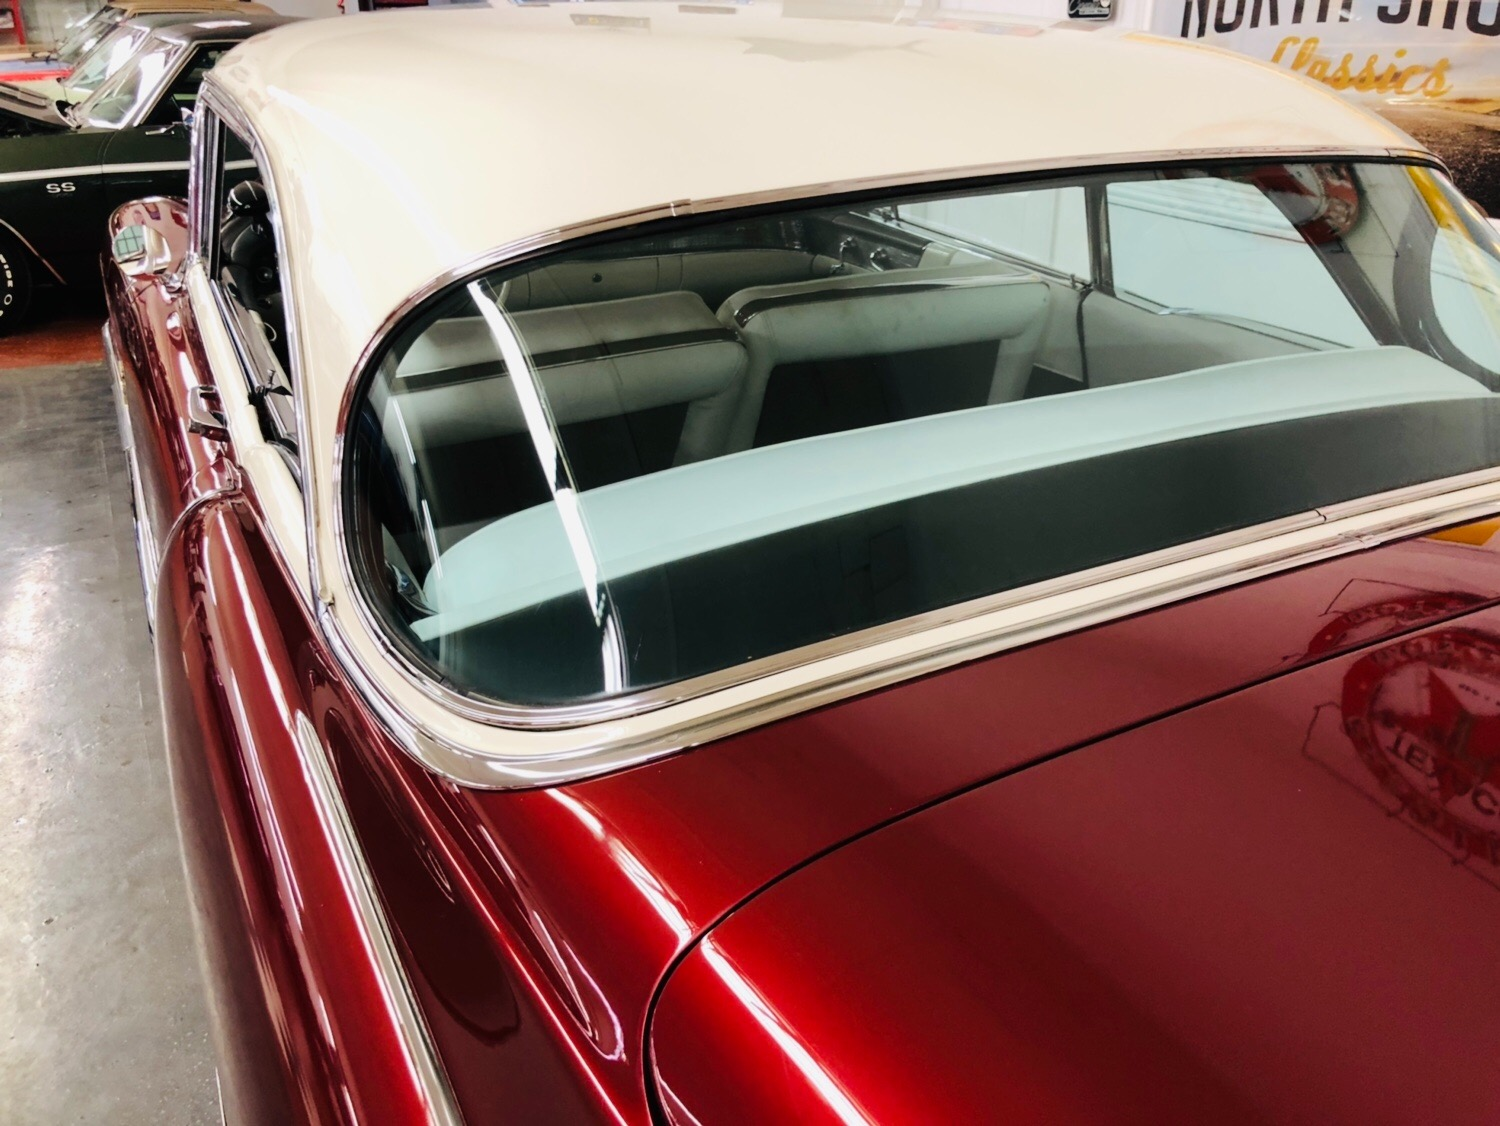 Used 1956 Cadillac Coupe DeVille -RESTORED 2 DOOR HARDTOP FROM ARIZONA-SEE VIDEO | Mundelein, IL